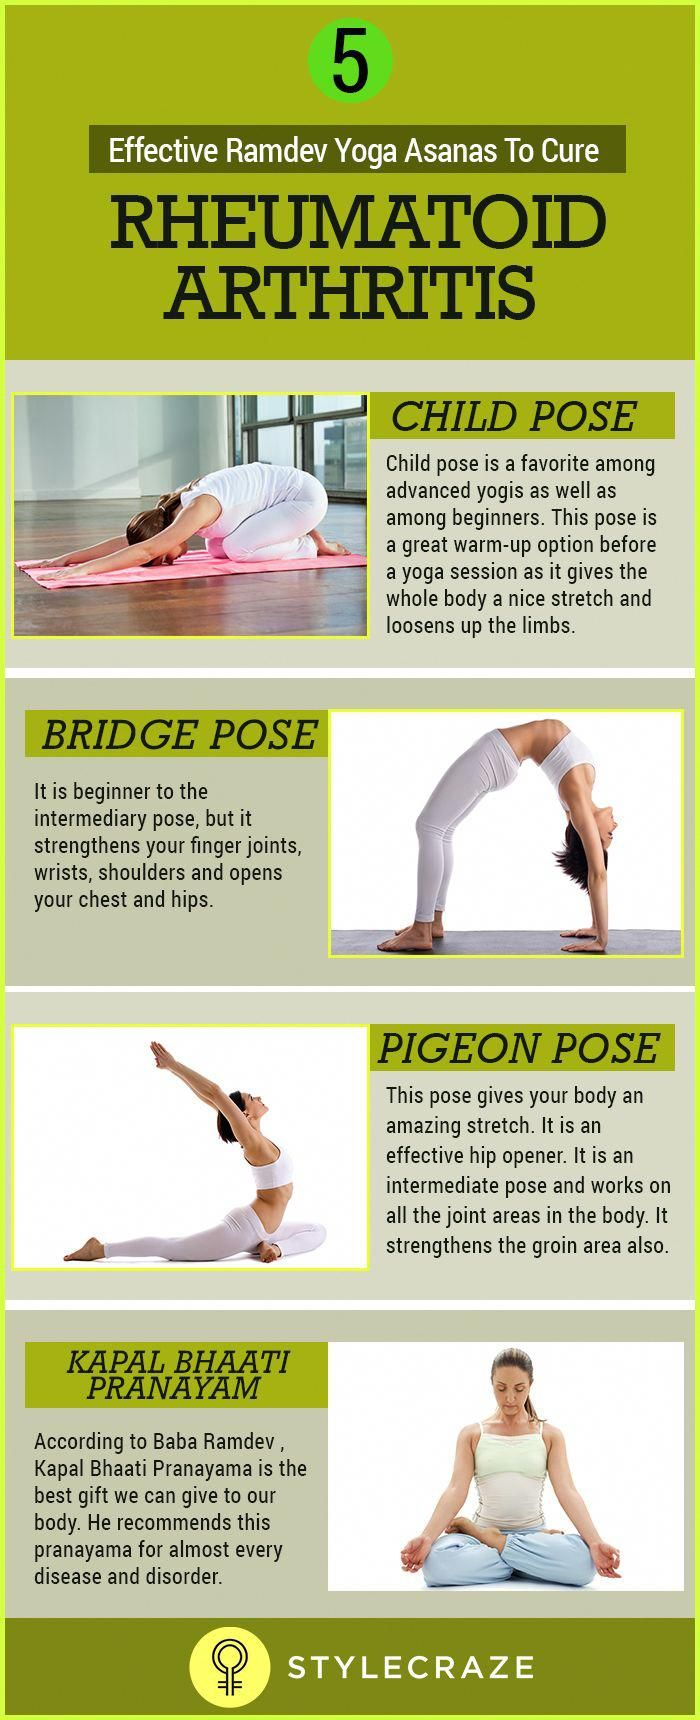 Key Things You Should Know About Yoga Asanas Yoga For Arthritis Exercise For Rheumatoid Arthritis Arthritis Exercises